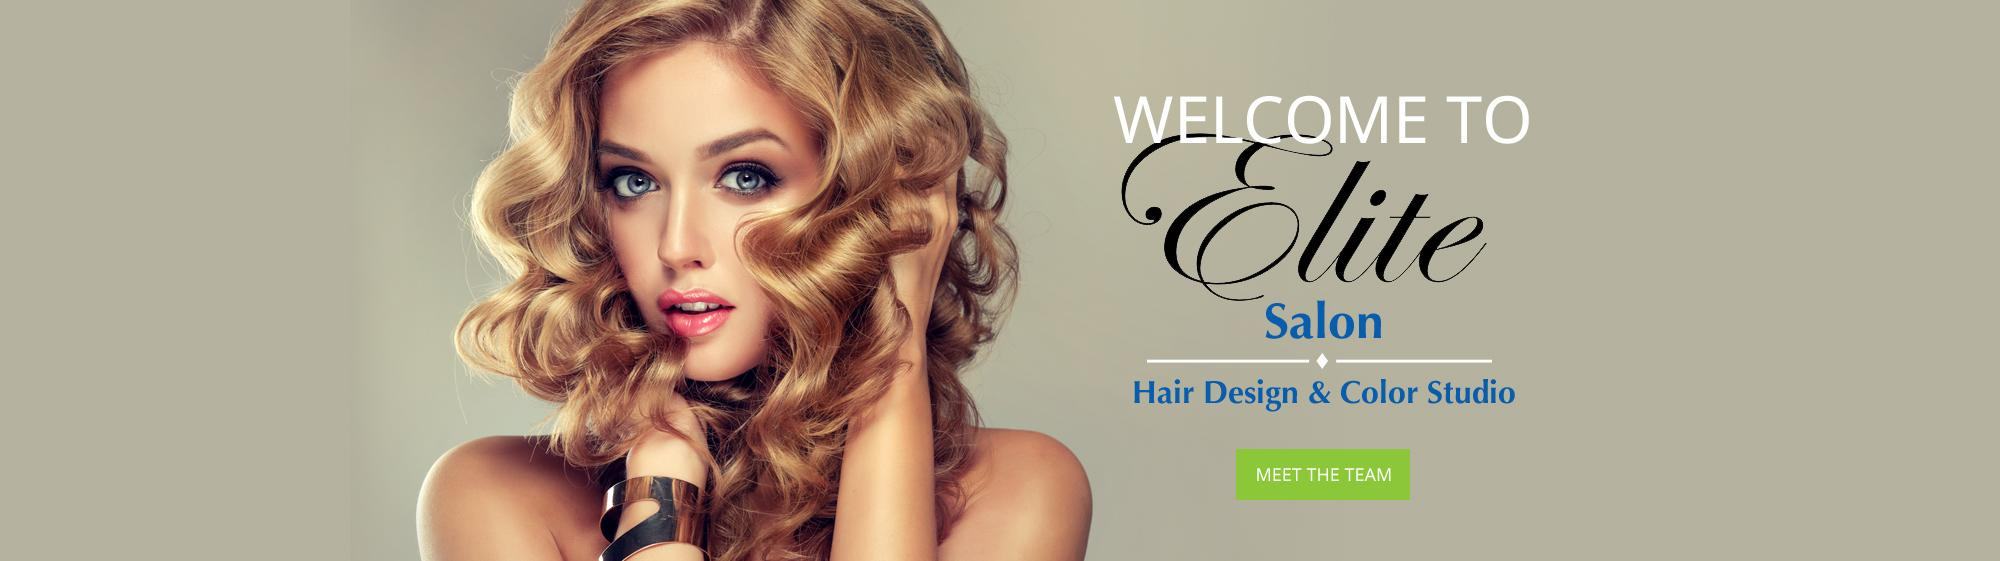 Welcome to Elite Salon Hair Design & Color Studio Meet the Team